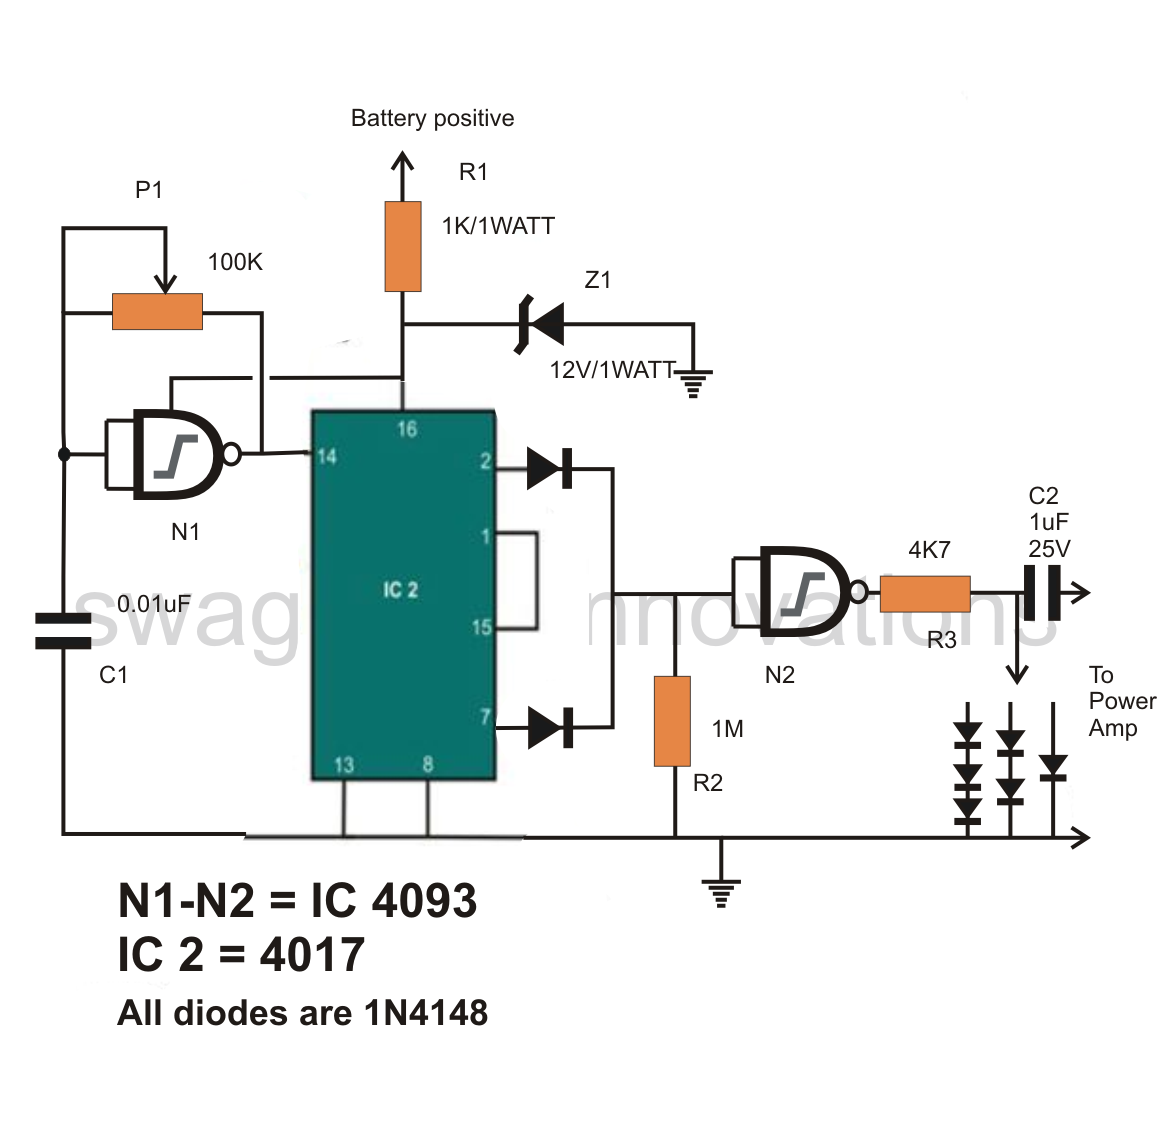 Dc To Ac Inverter Schematic Diagram Motorcycle Brake Light Switch Wiring Diagrammide Pure Sine Wave Circuit Download